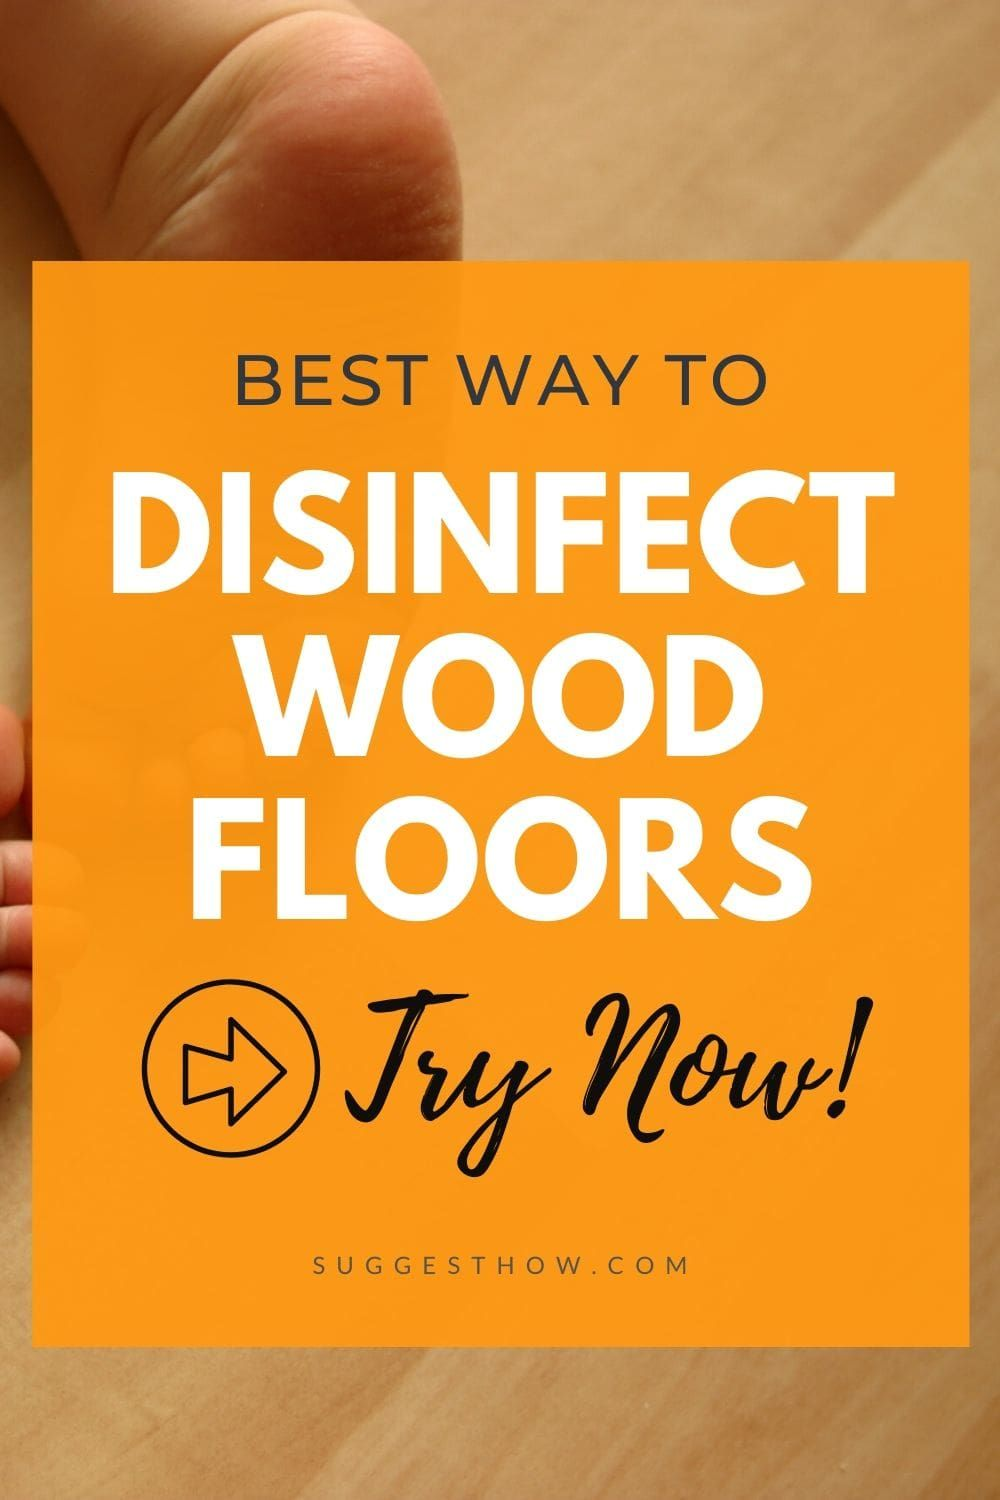 How To Disinfect Wood Floors Fast Effectively In 2020 Flooring Cleaning Wood Floors Cleaning Wood